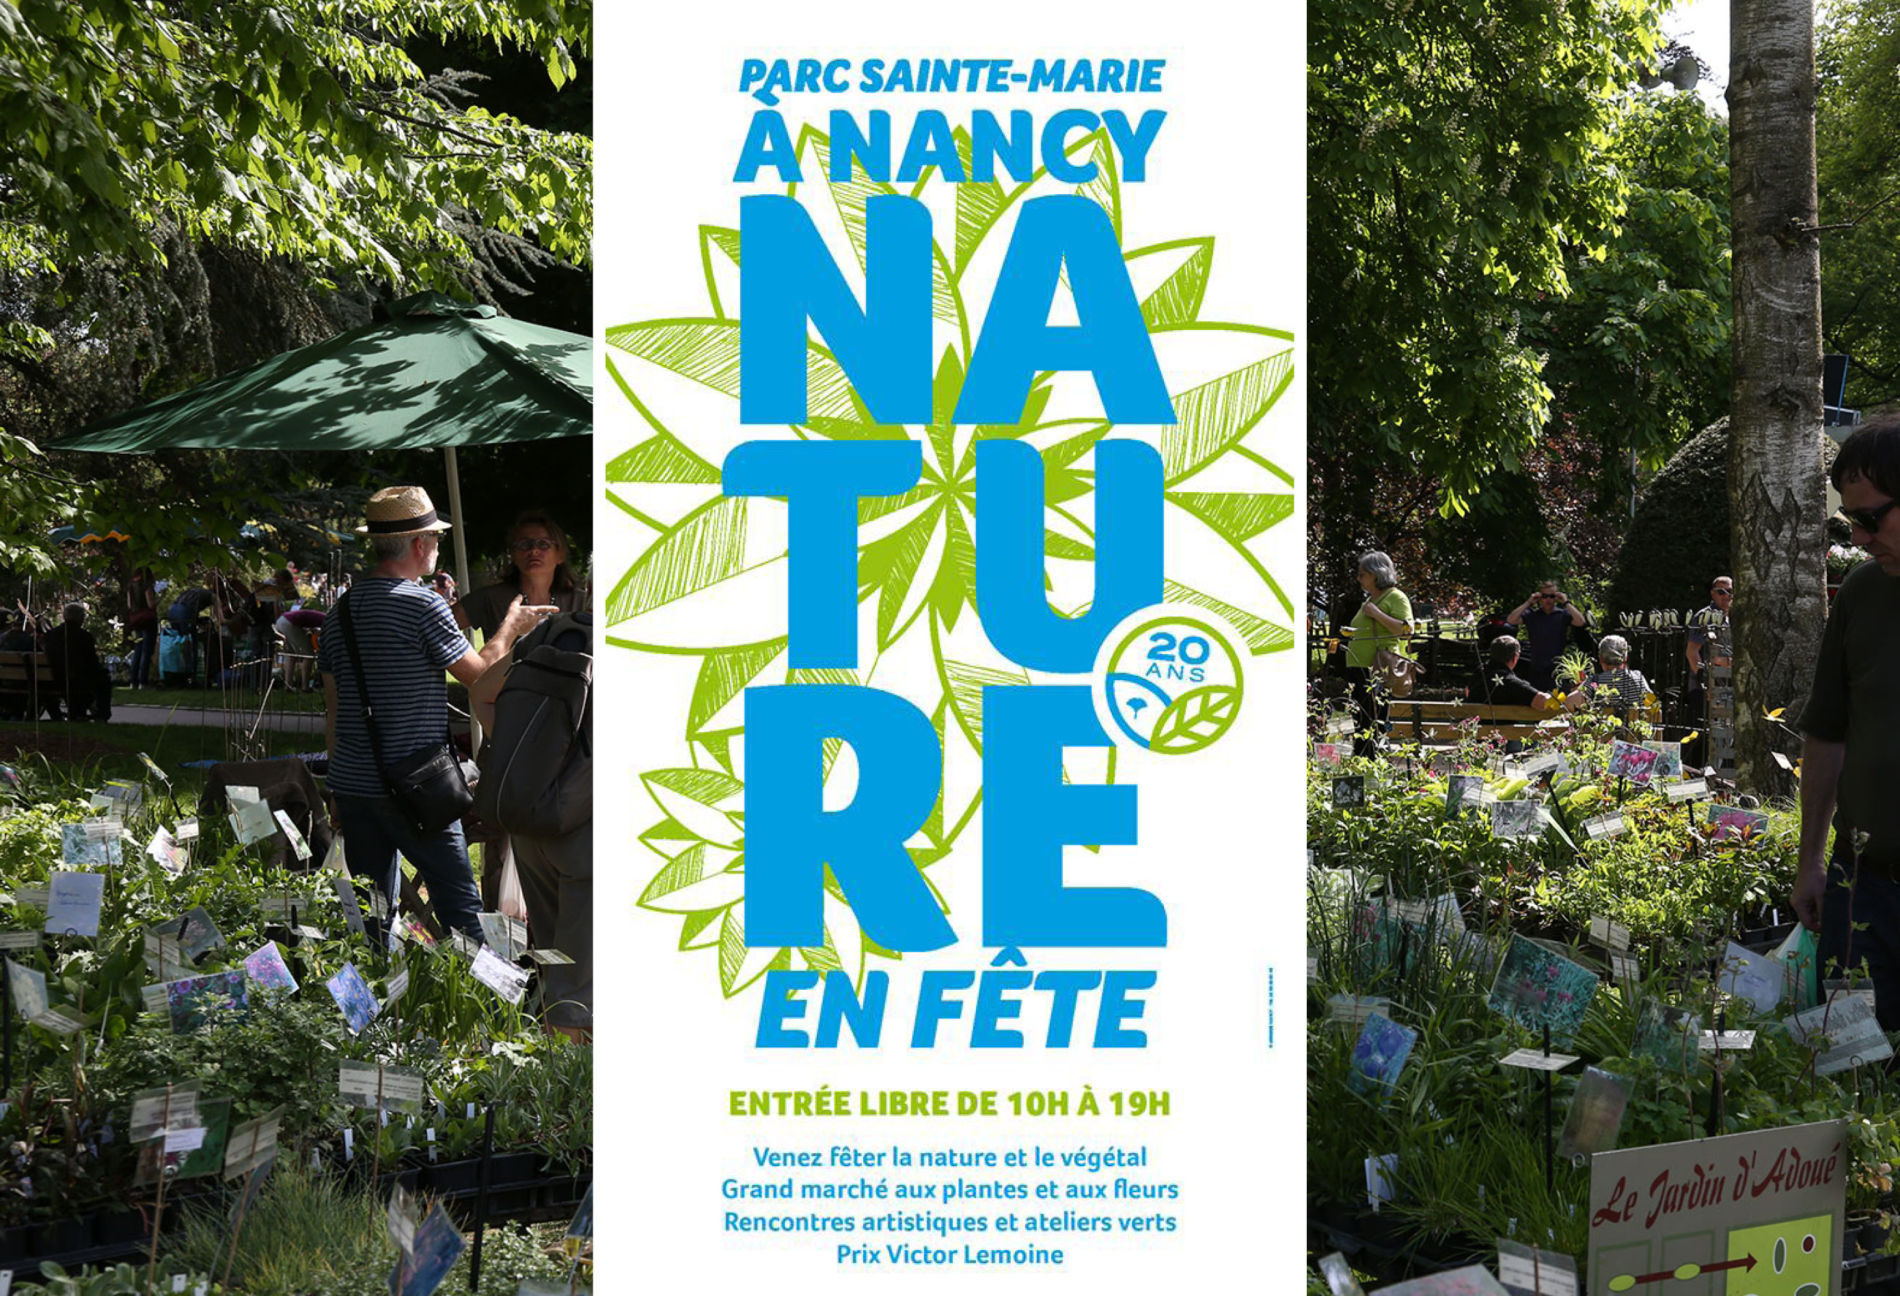 NANCY – NATURE EN FÊTE